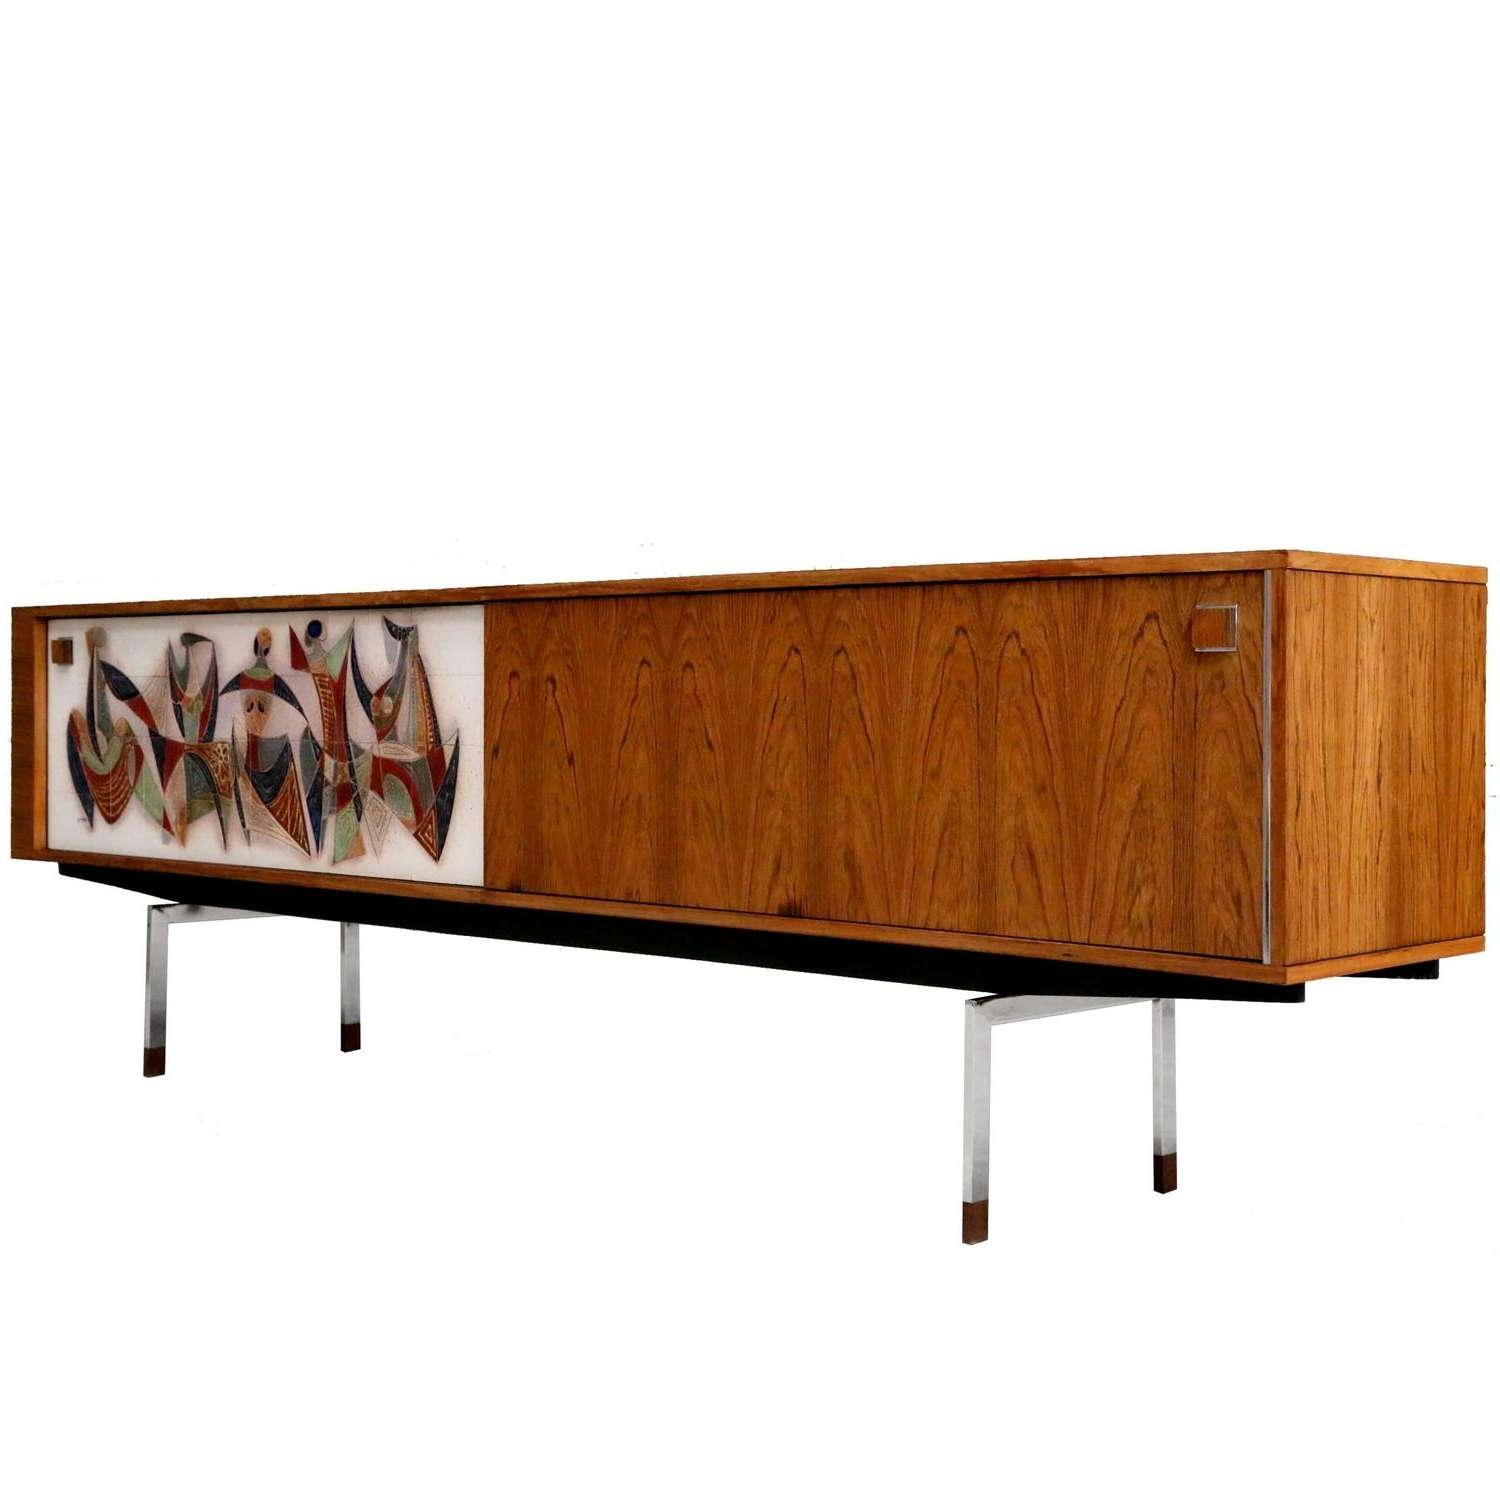 Extra Long Modernist Sideboardarchitect Alfred Hendrickx For With Regard To Long Sideboards (View 19 of 20)